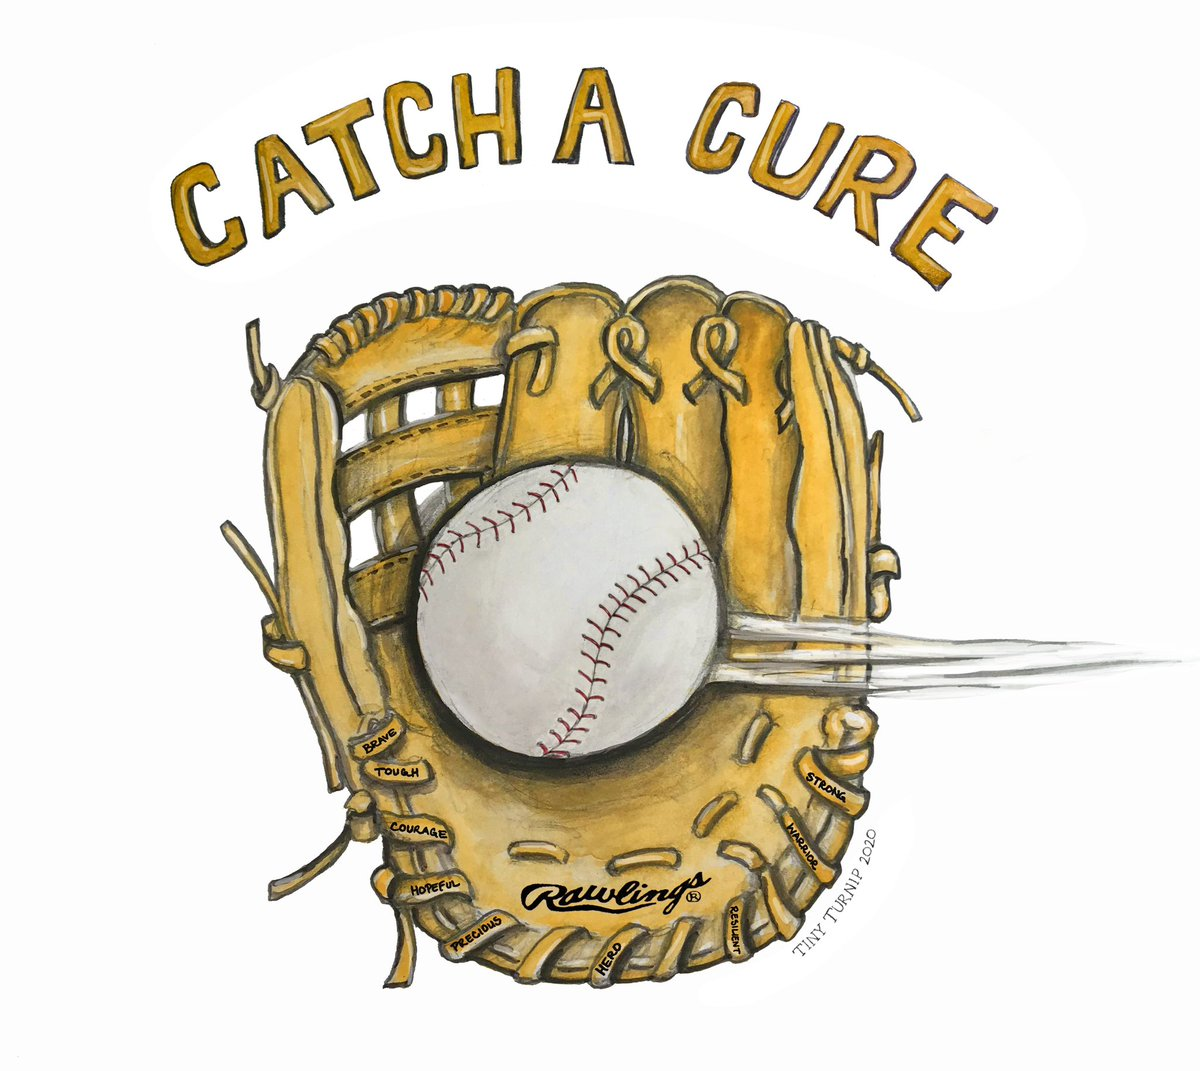 """Help us """"Catch A Cure"""" for pediatric cancer! September is the month to go GOLD to raise hope,awareness,& funds for pediatric cancer research & the affects it has on families! We are teaming up w/ @radychildrens to donate profits from our collab w/ the McCutchen & Crawford family. https://t.co/a3p6YpSng6"""